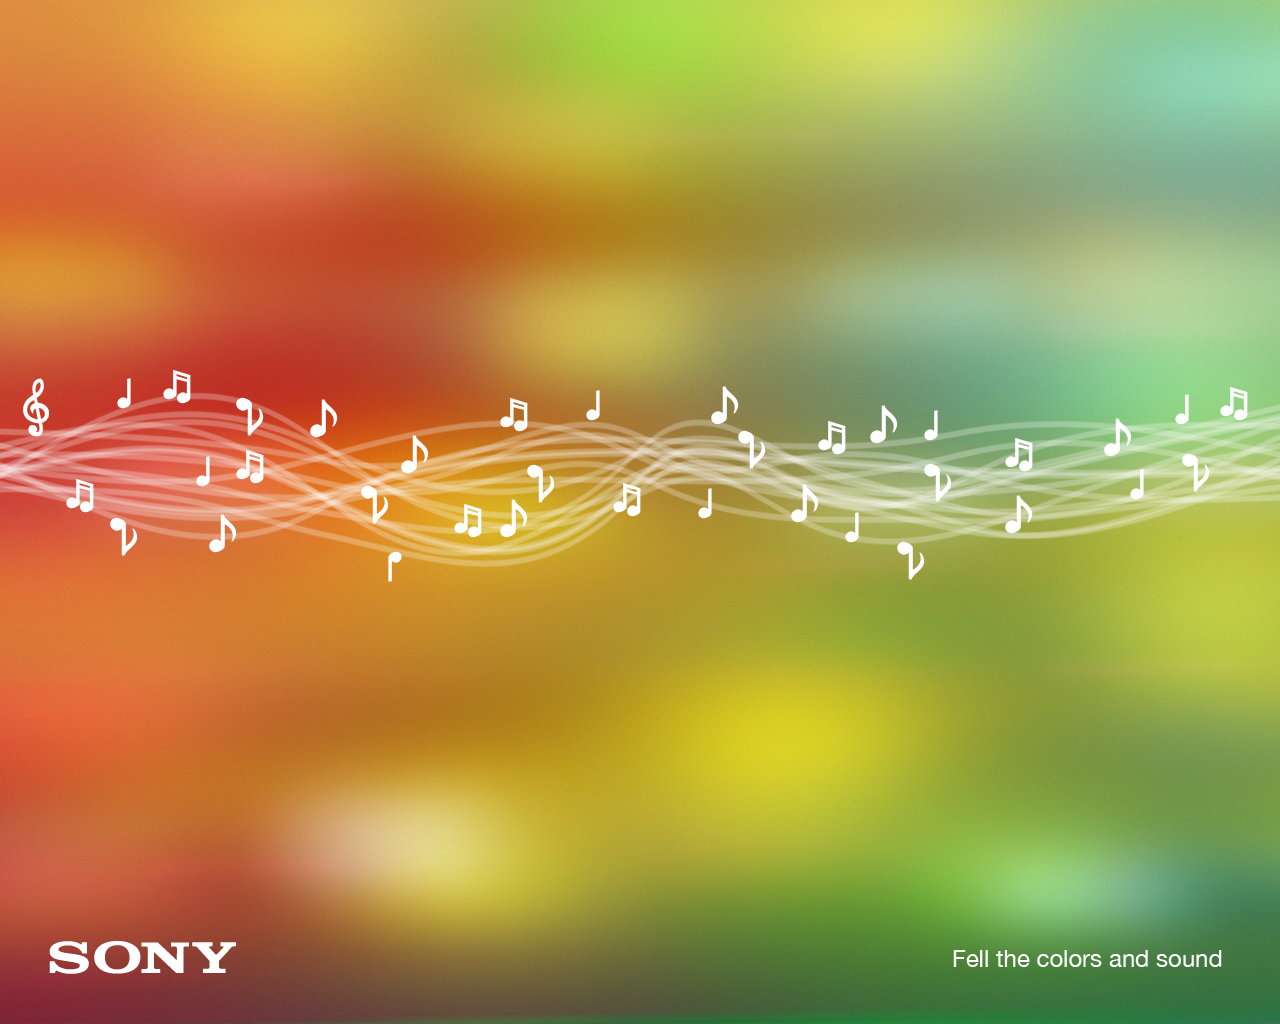 Sony Colors And Sound Wallpaper Geekpedia 1280x1024